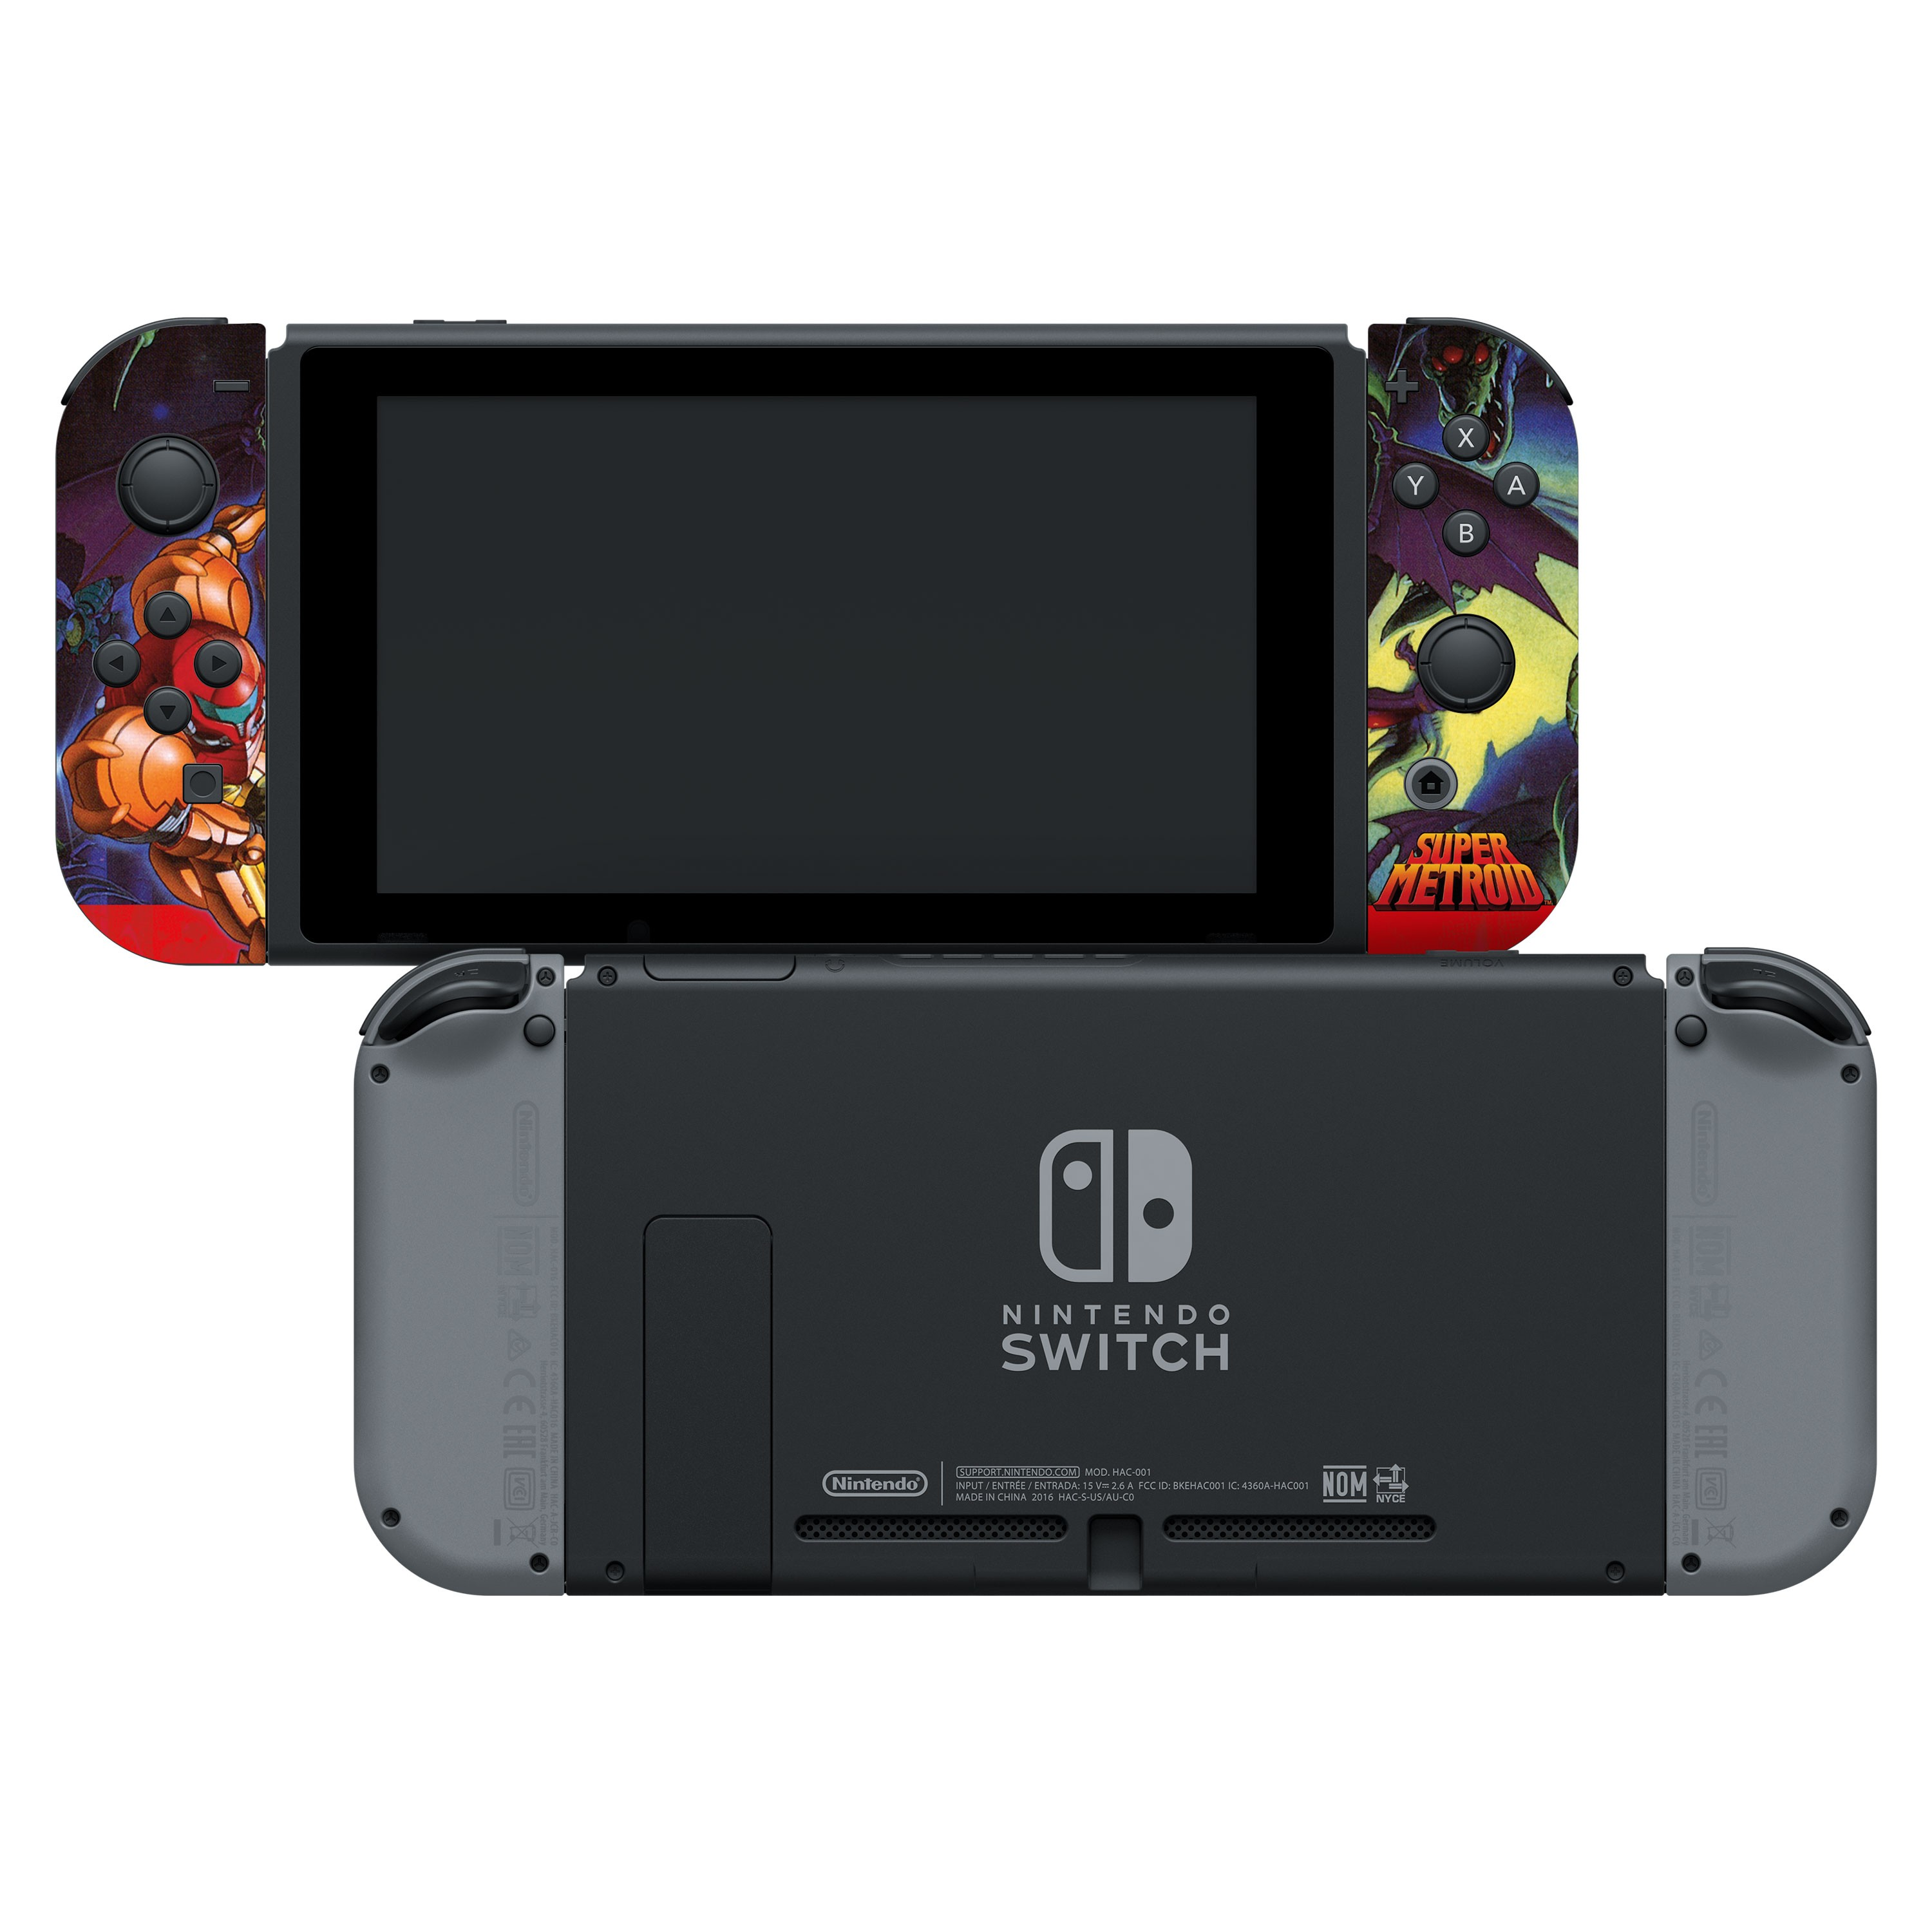 "Super Metroid™ ""Super Metroid"" Nintendo Switch™ Joy-Con™ Skin + Joy-Con™ Grip Skin + Screen Protector Assortment, Officially Licensed by Nintendo"